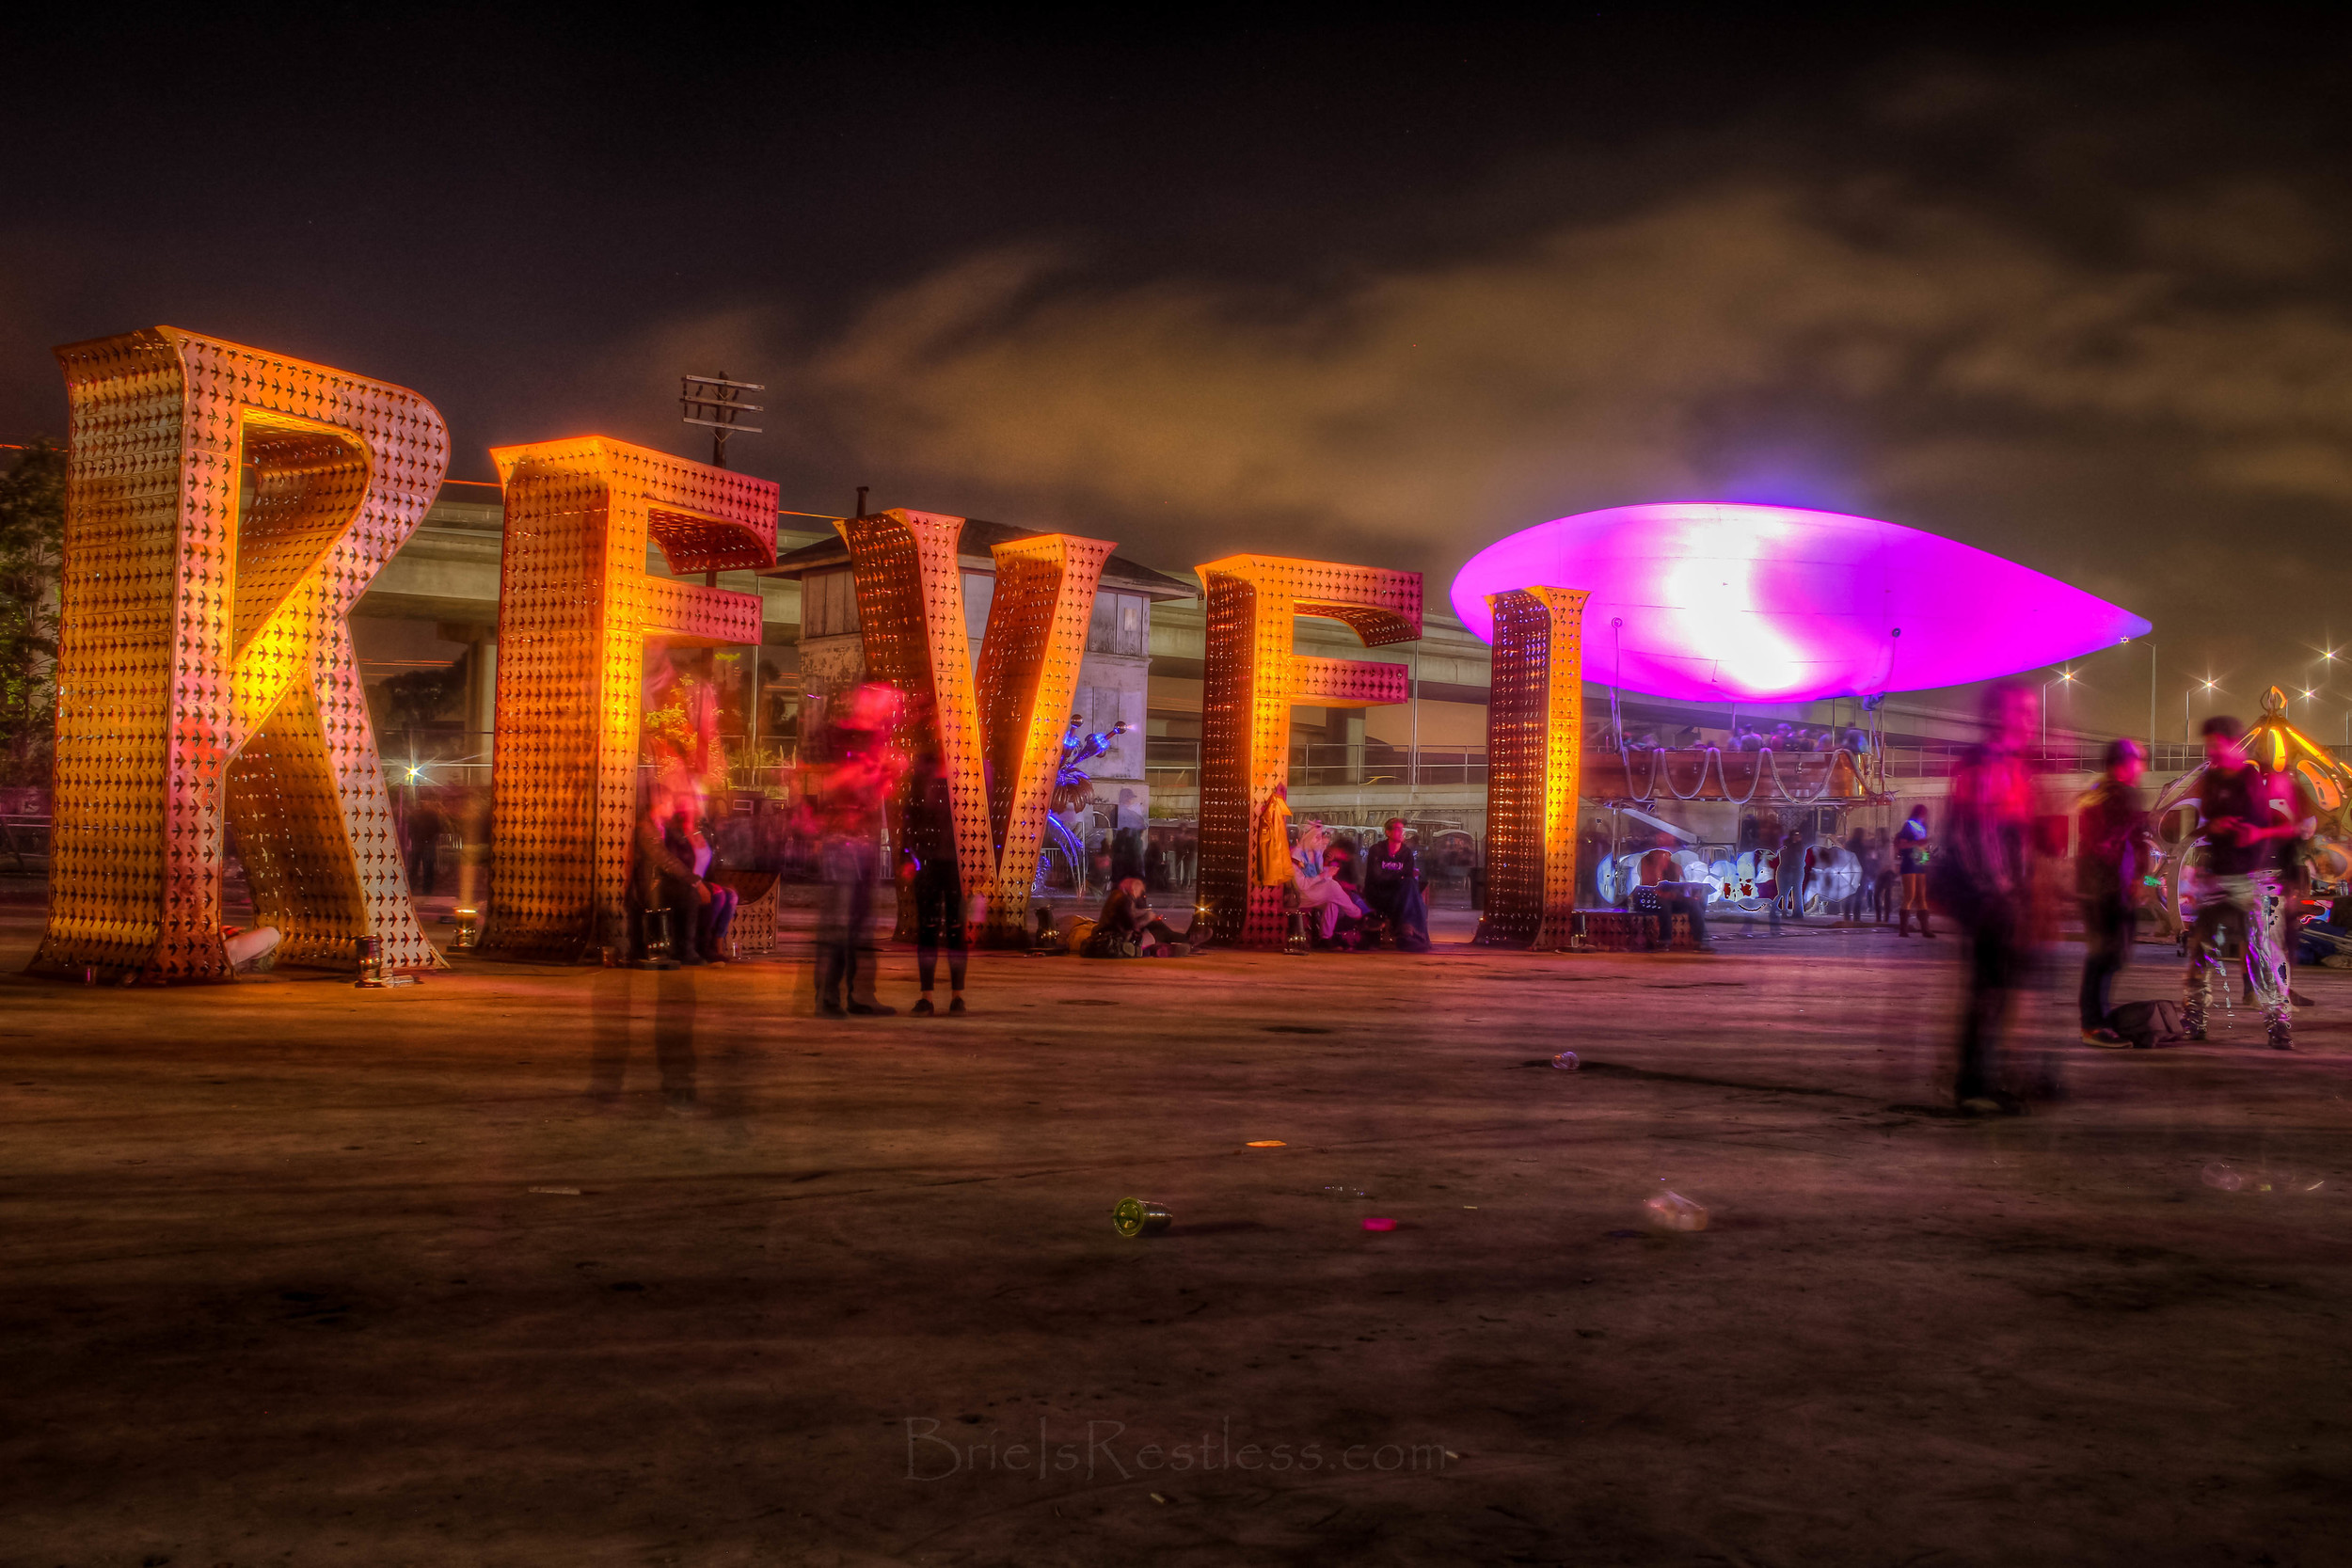 oakland-california---16th-st-station---revel-event----sunset---the-bay-area---june-2015-1-of-1-5_18987307612_o.jpg